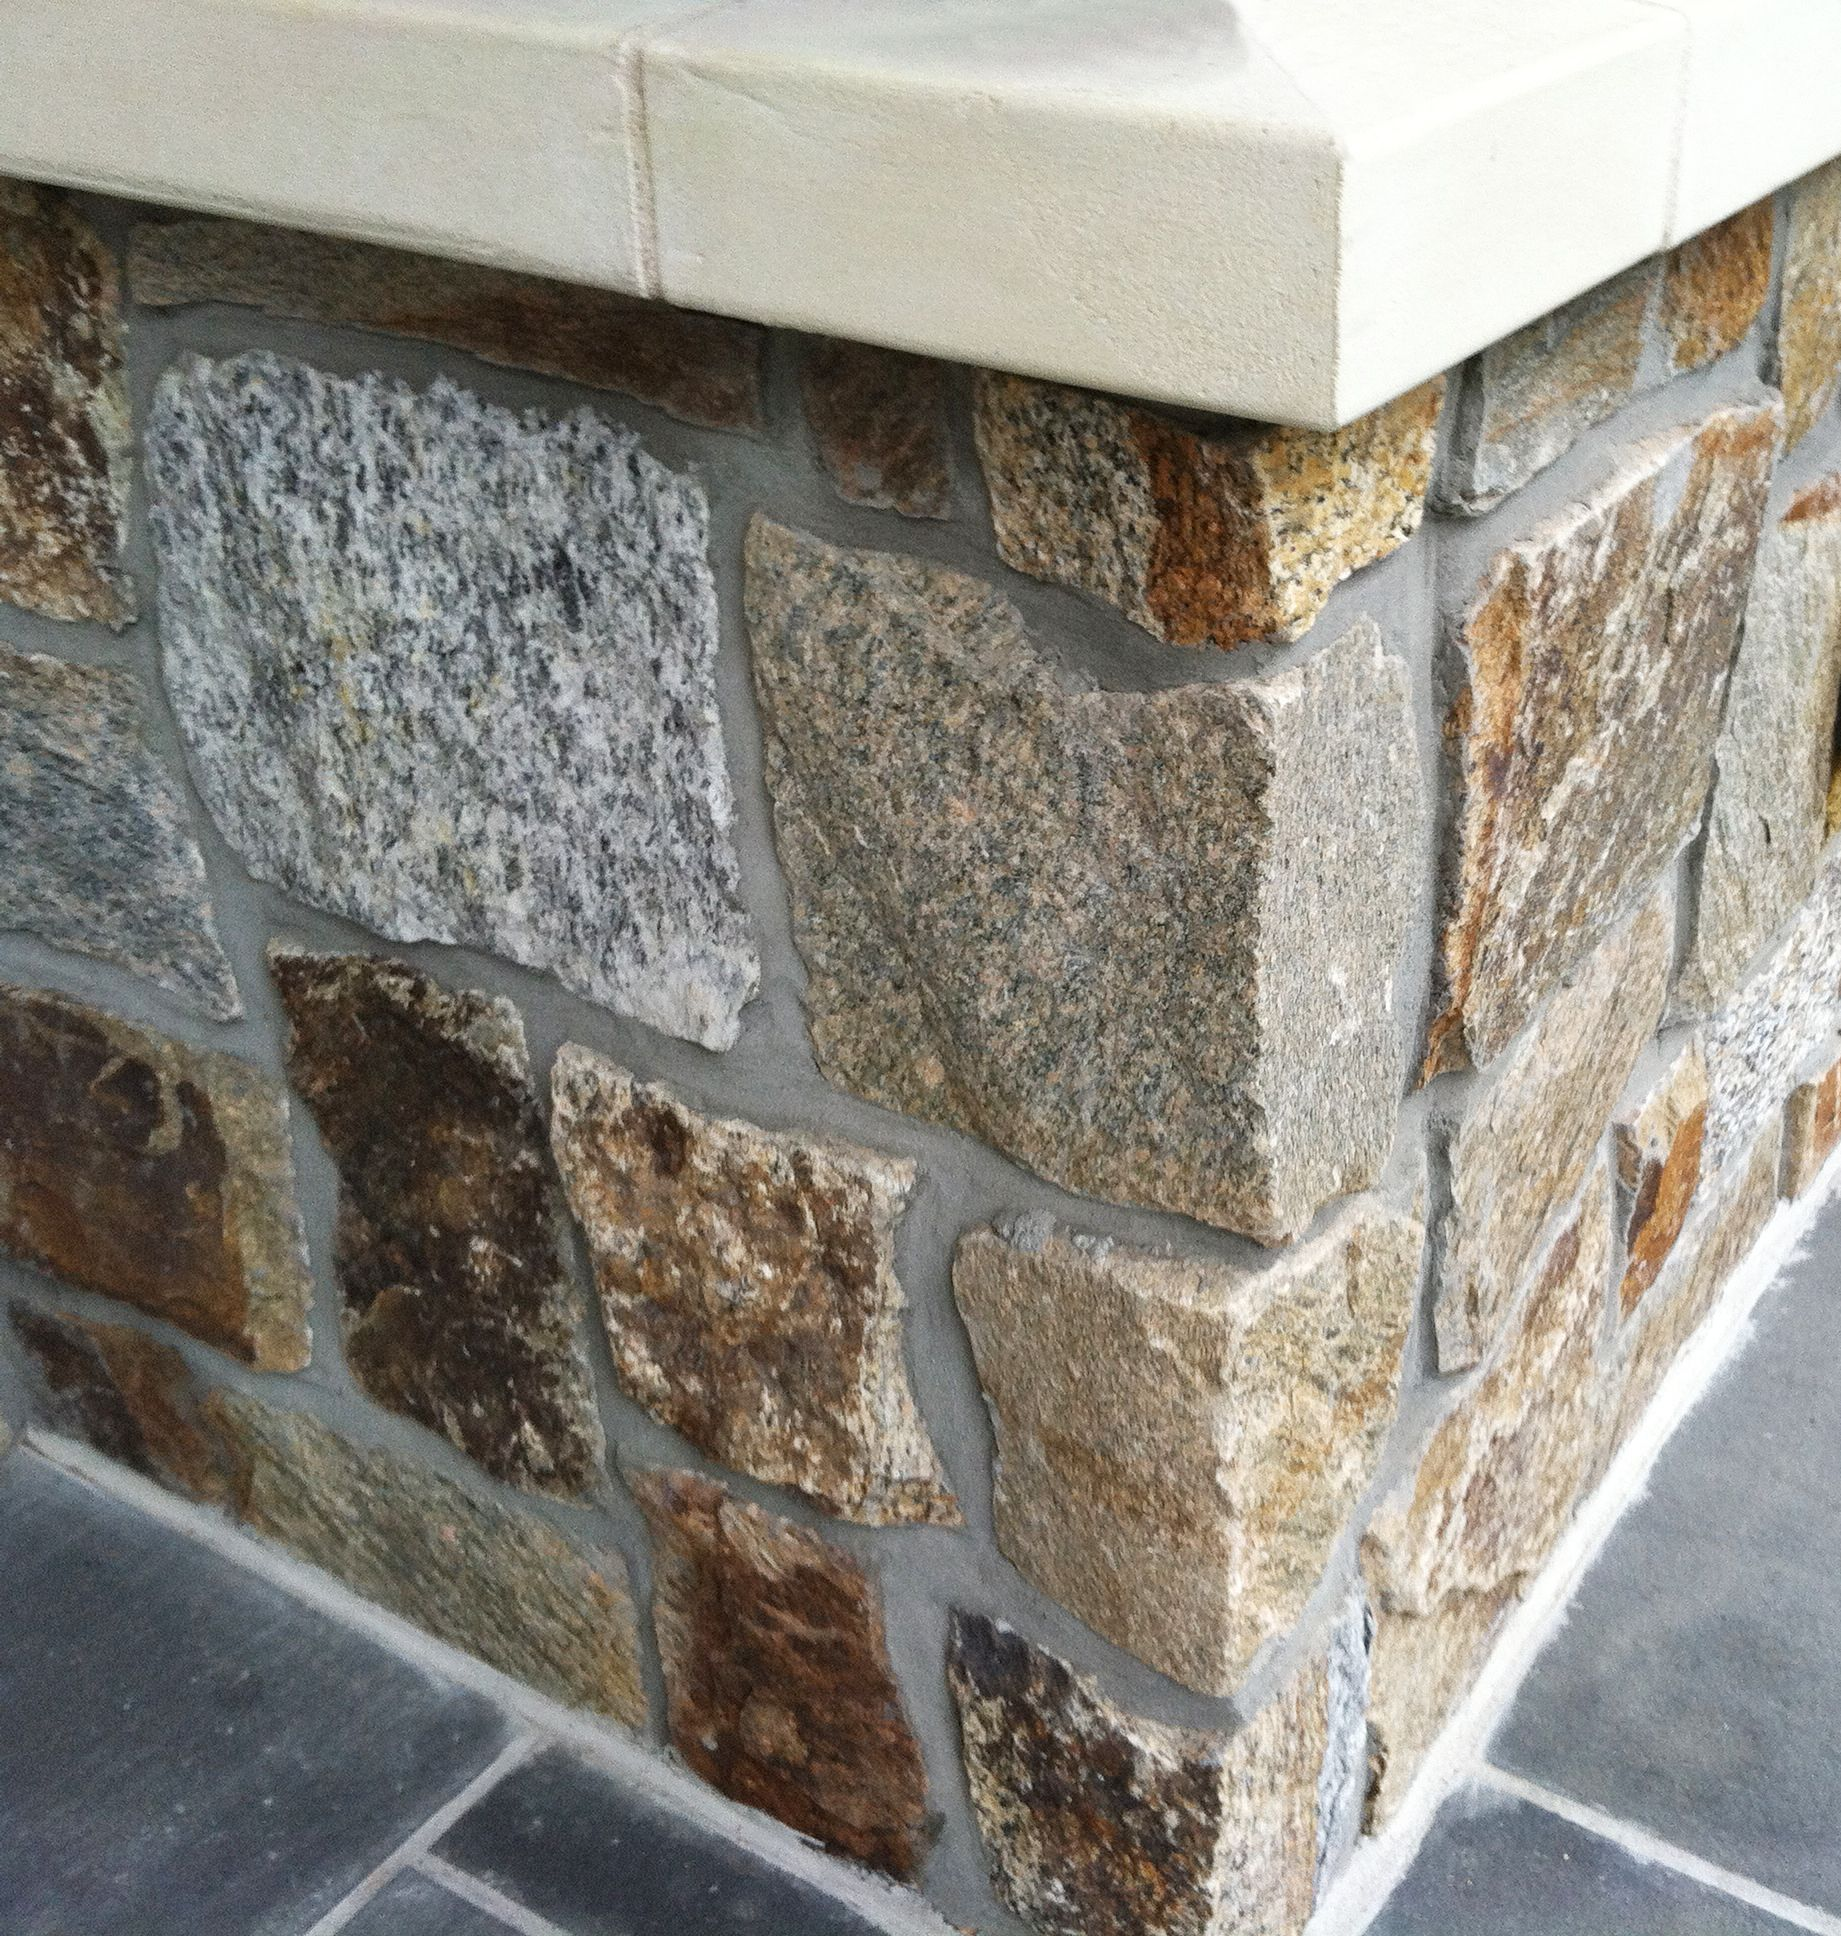 Why leave concrete when you can have natural stone veneer